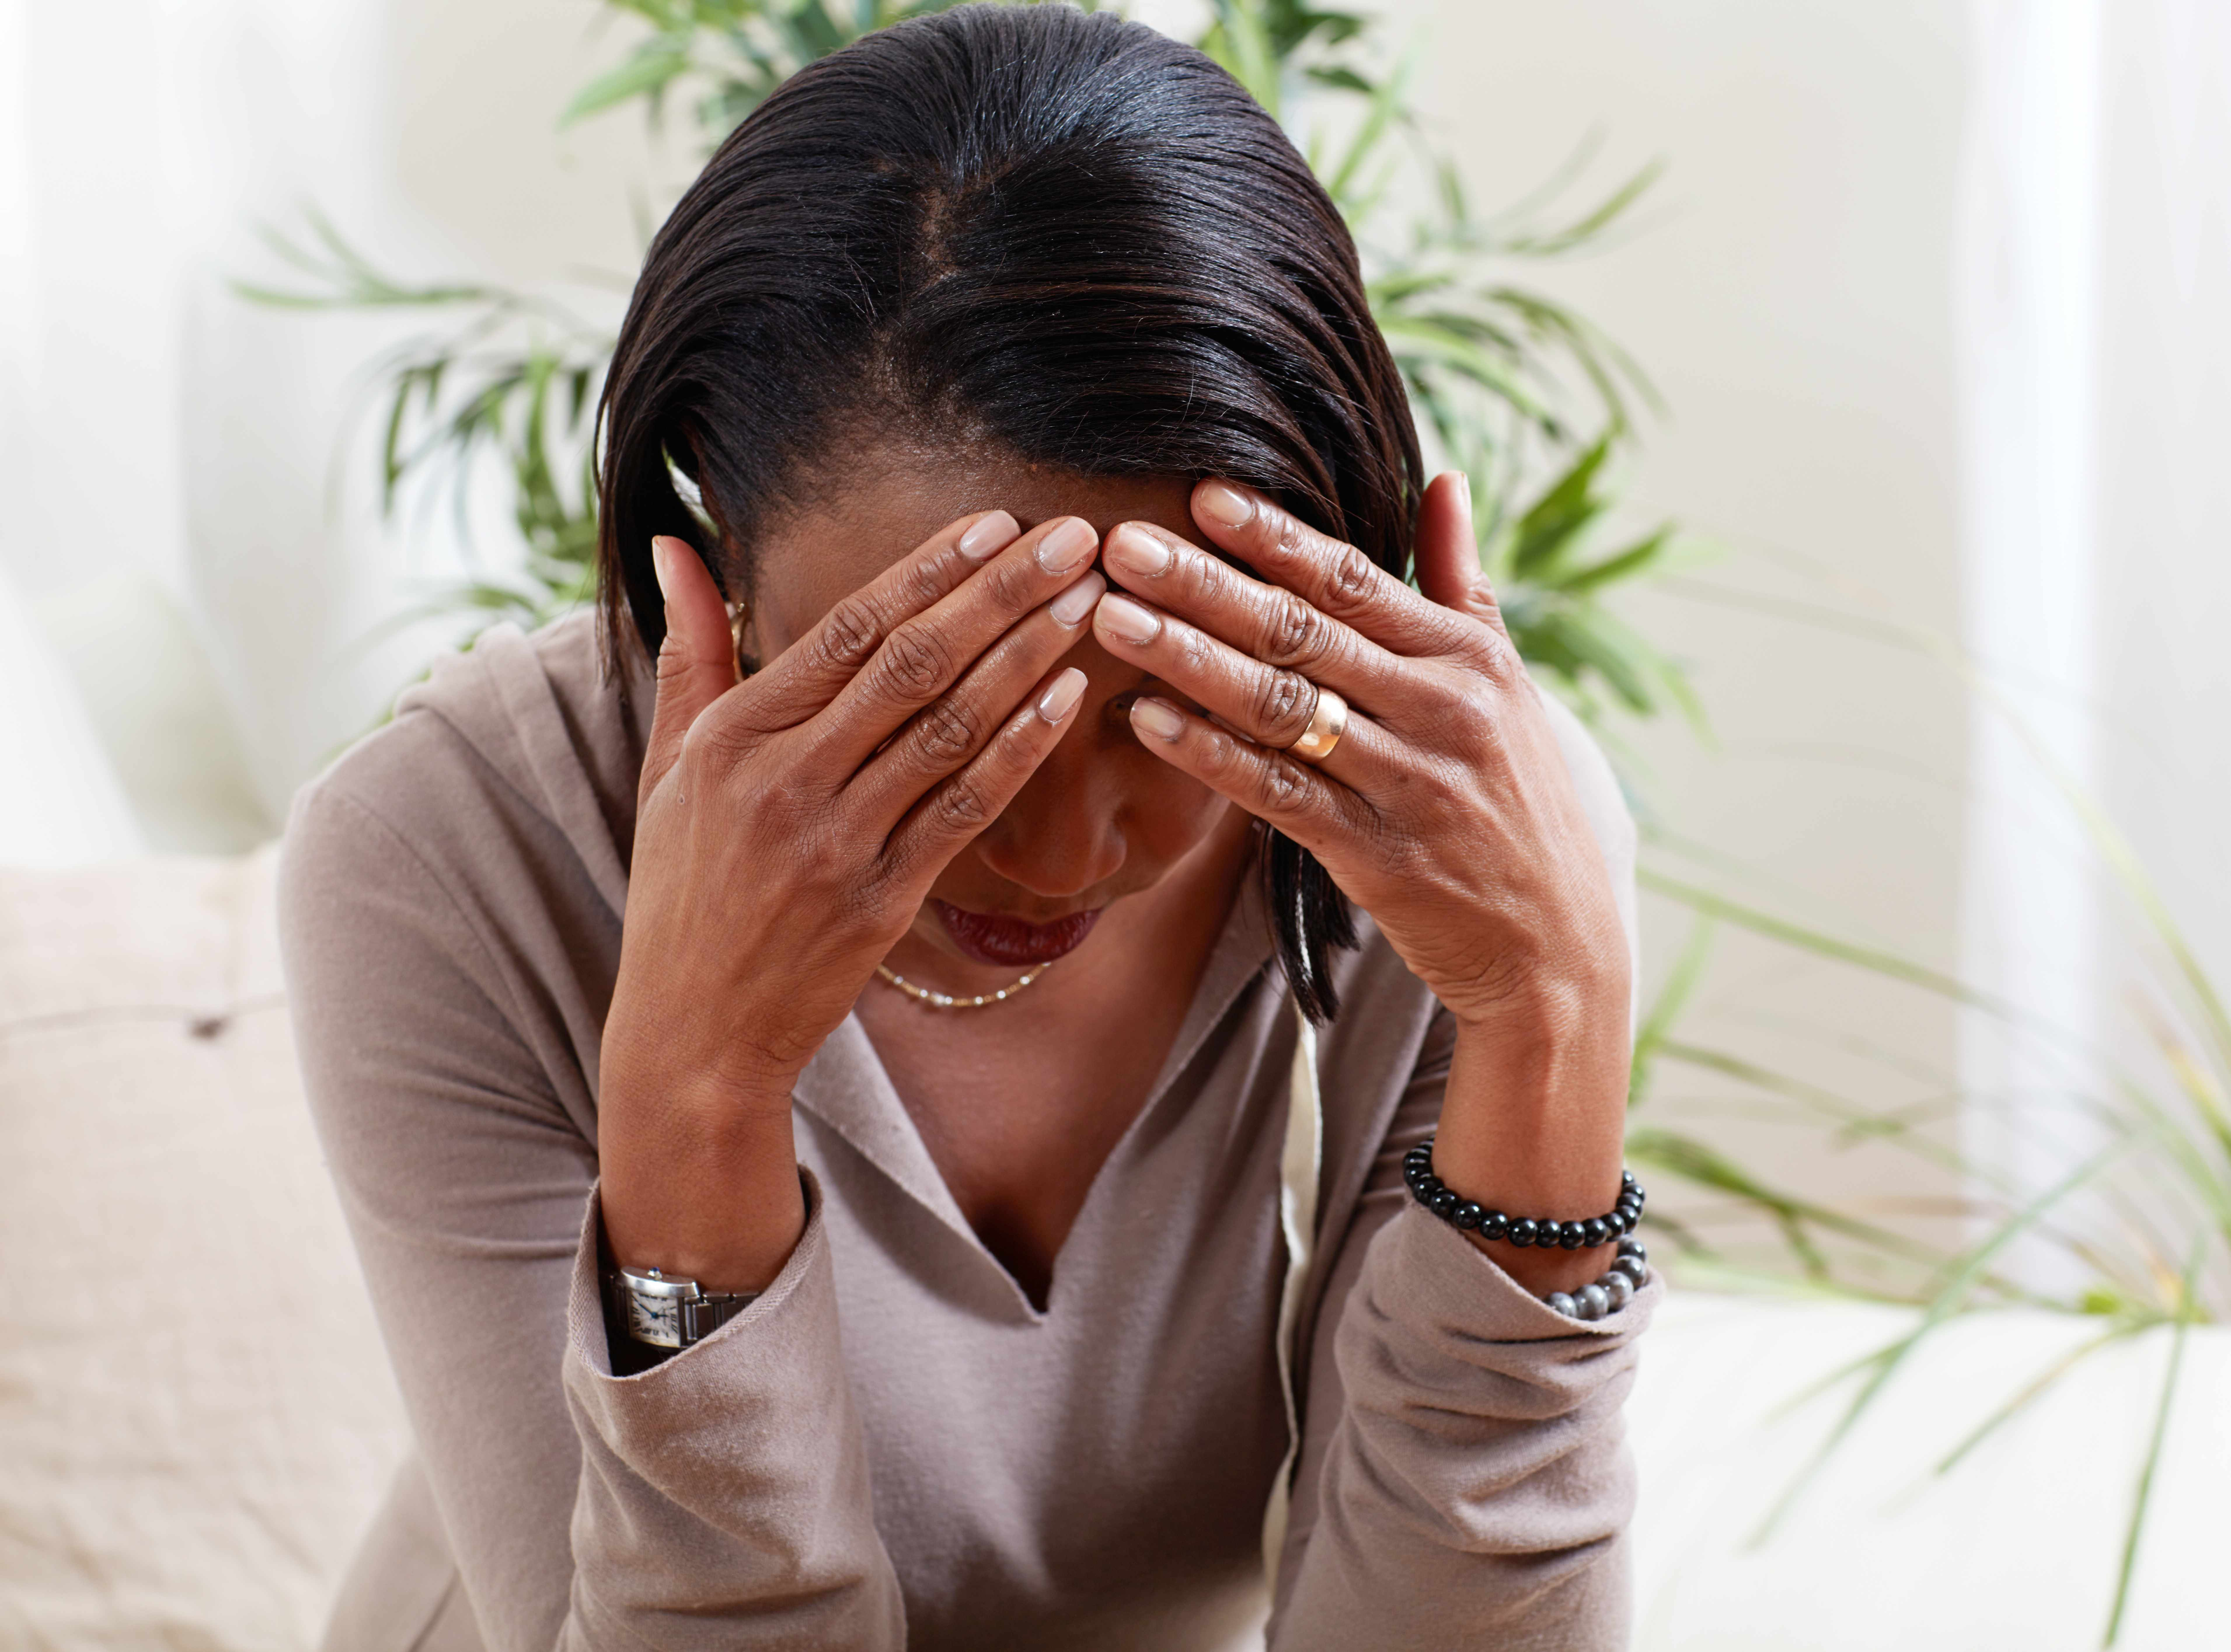 an African-American woman holding her head in her hands looking tired, worried or maybe with a headache